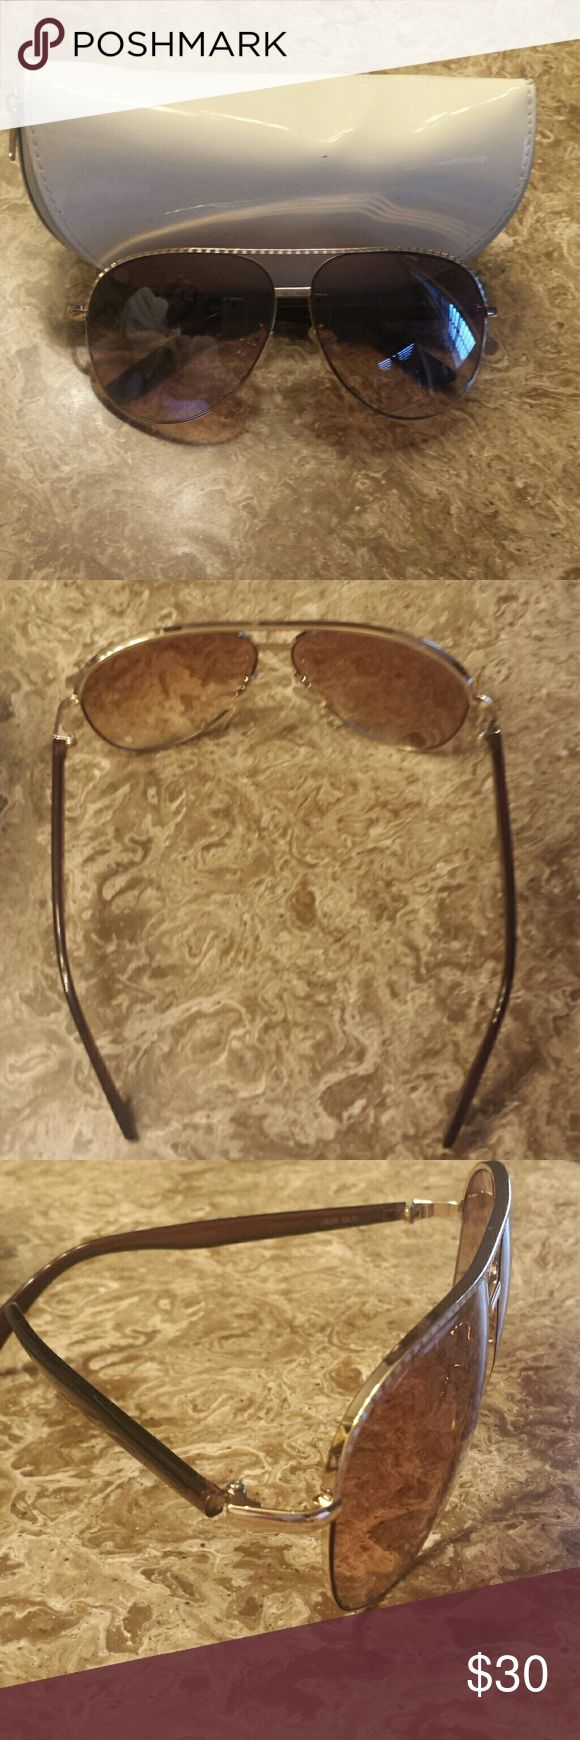 Jessica Simpson sunglasses Very nice aviator style.  Gold frame. No scratches. Comes with case. Jessica Simpson Accessories Sunglasses